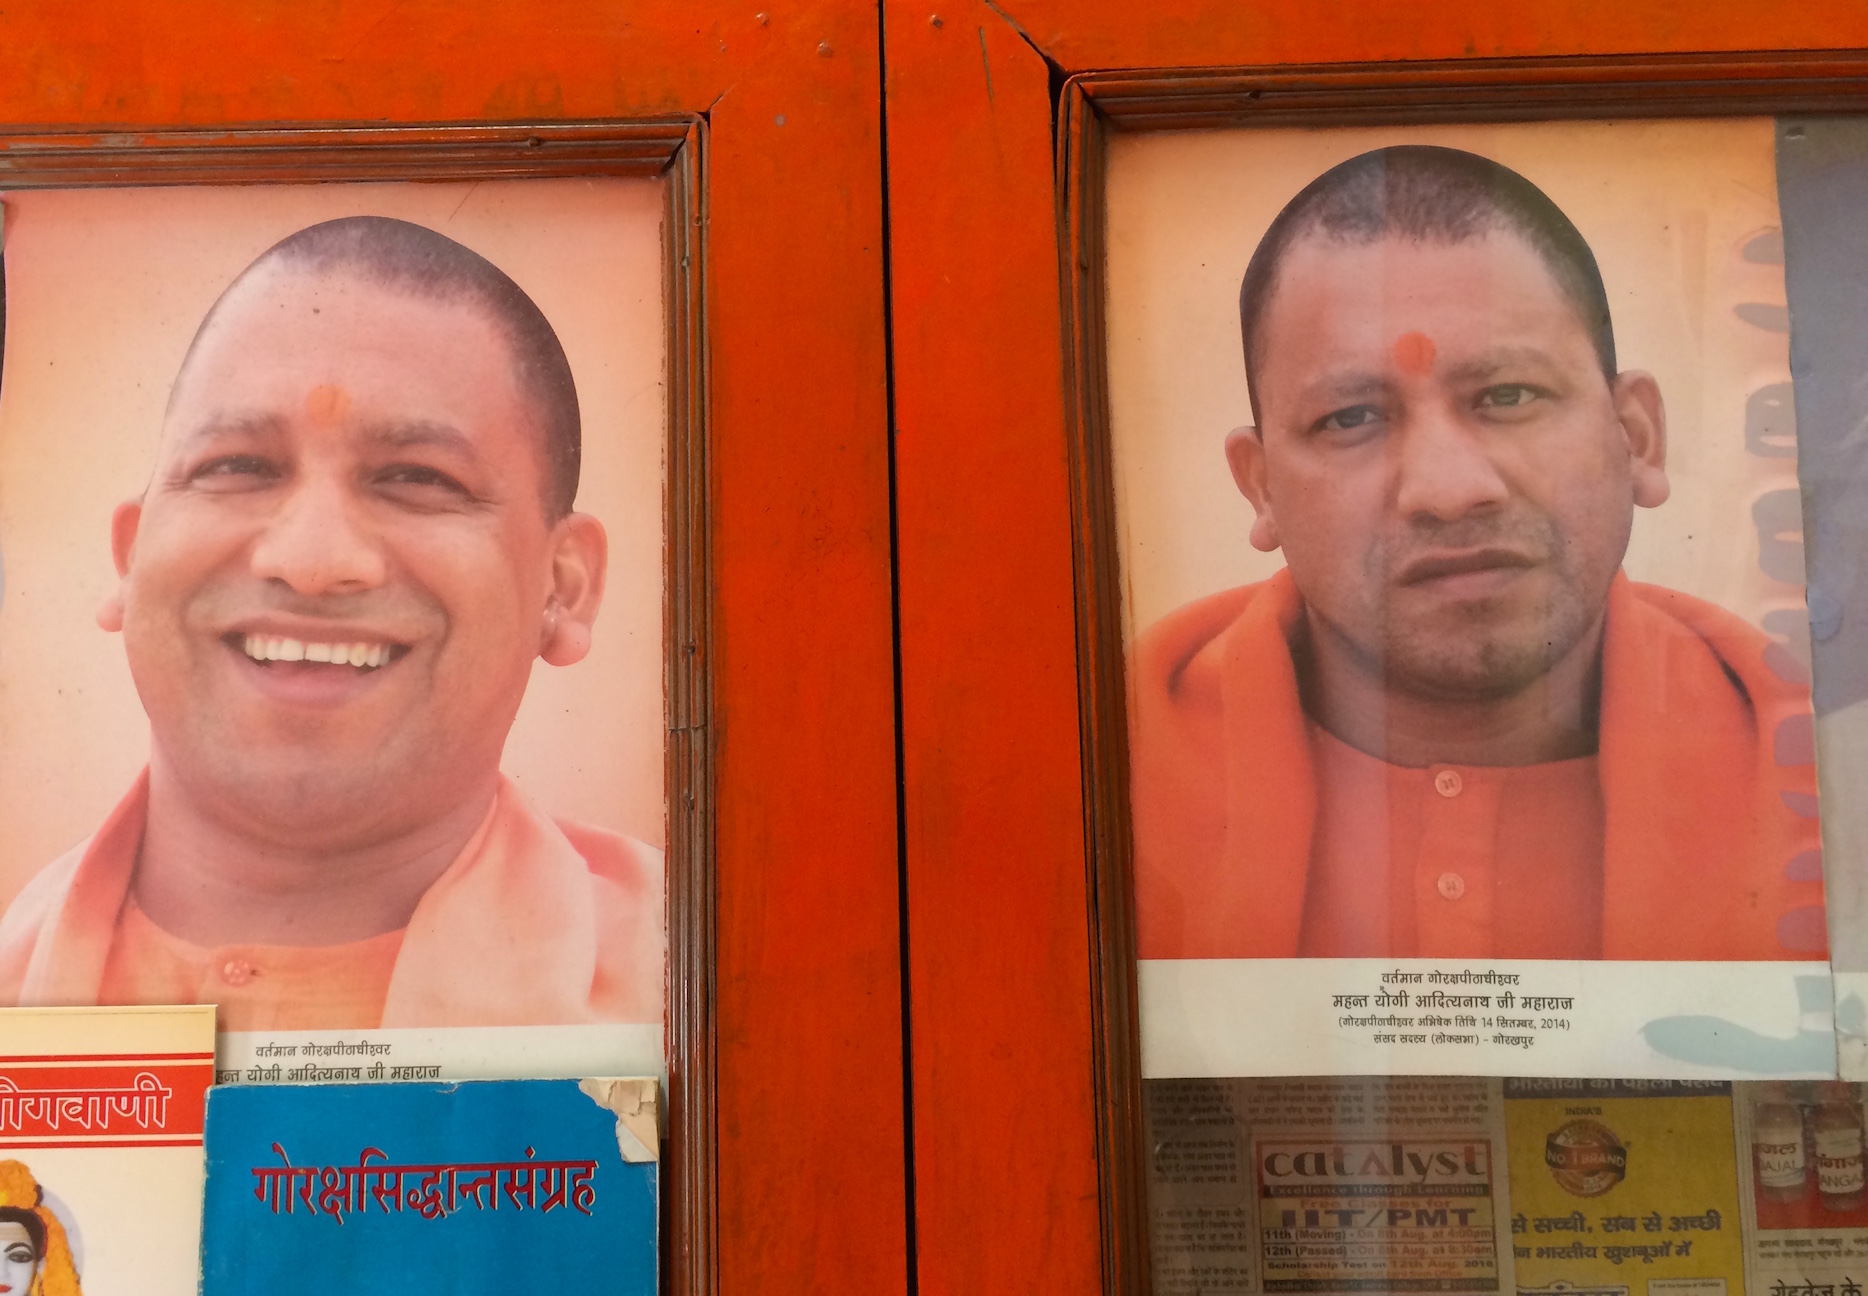 Posters of Adityanath available for sale at the Gorakhnath temple complex.